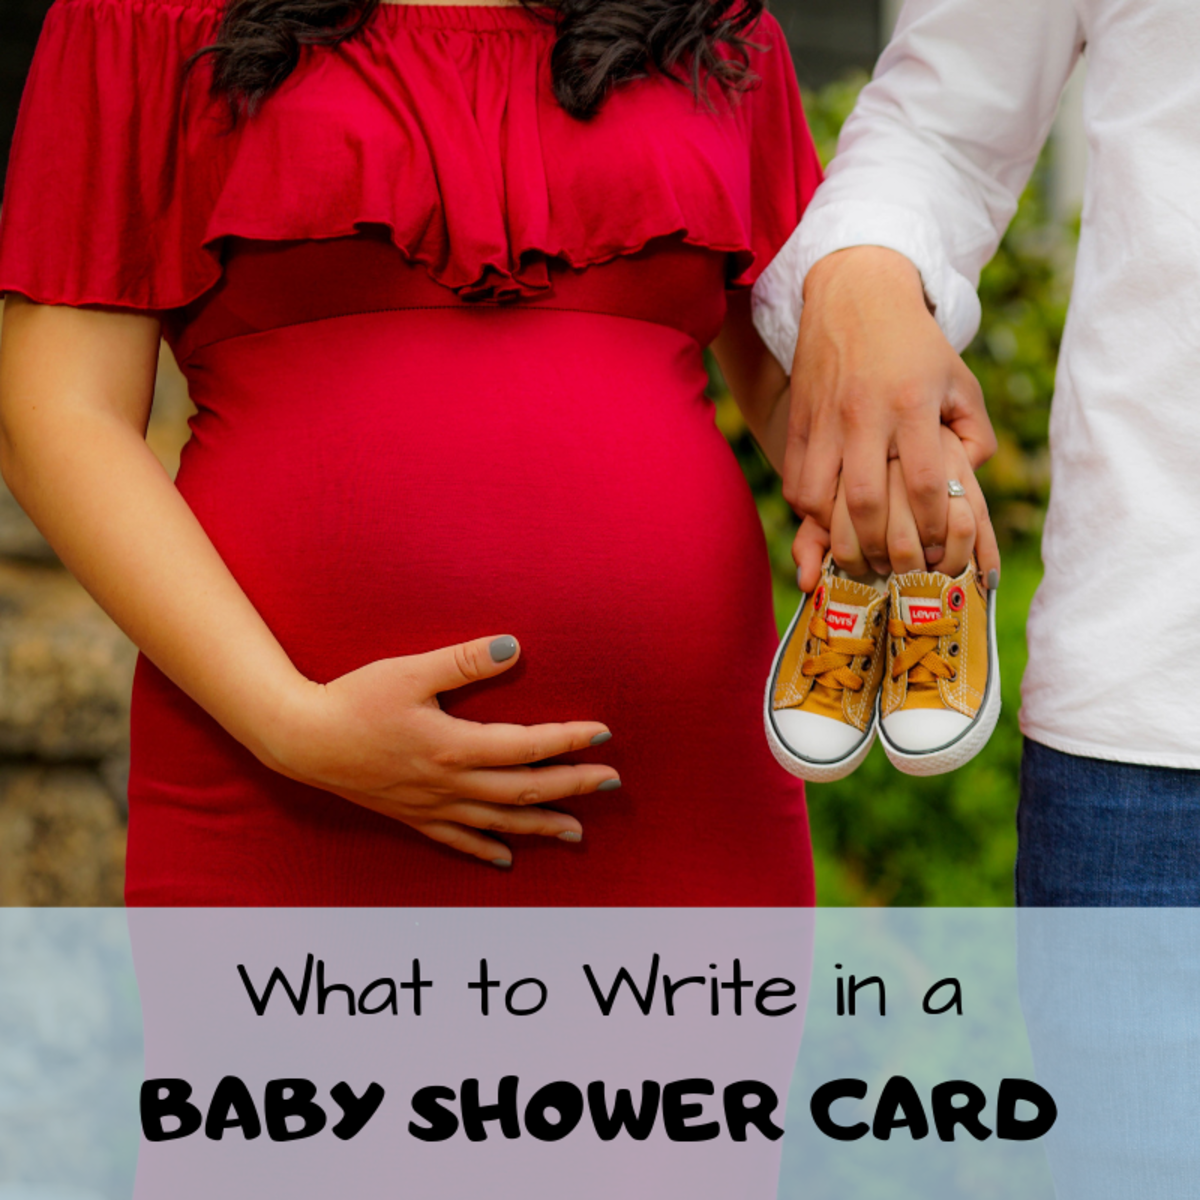 Having a baby is a big deal! Find the right words to congratulate the new or expecting parents in your life.